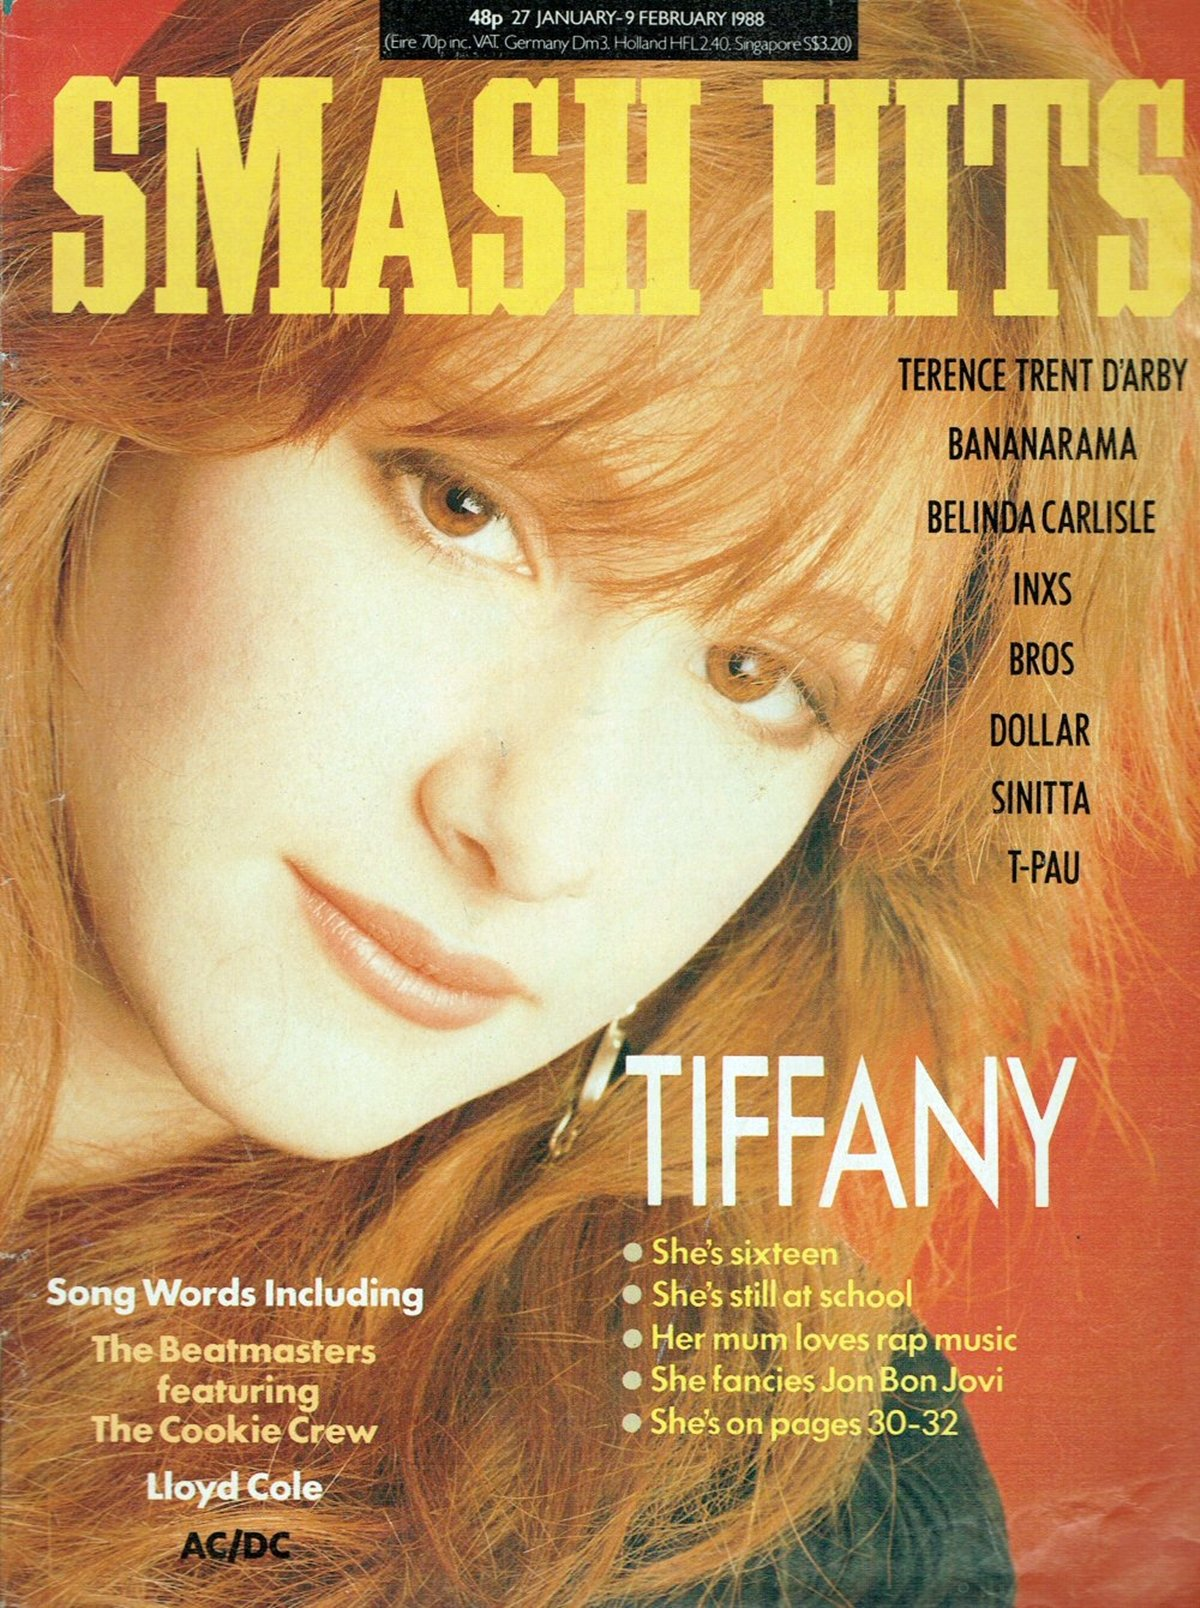 8 3 16 Smash Hits Covers That Will Take You Right Back To Your Youth